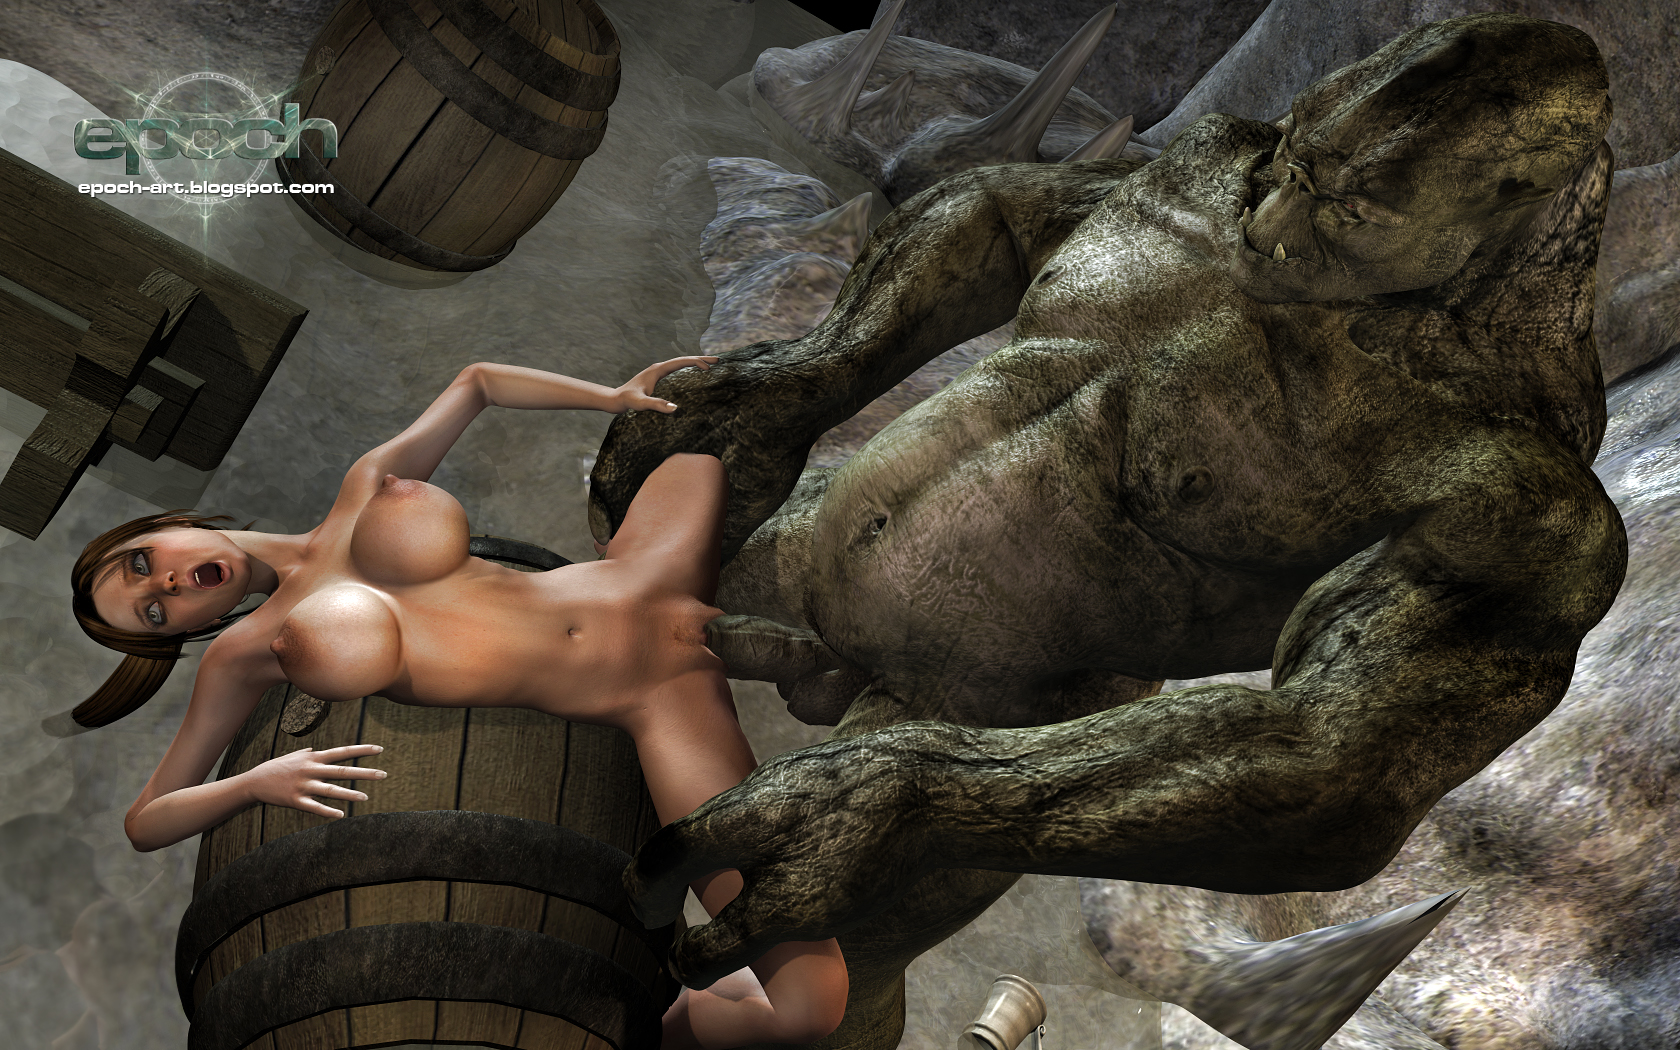 Fantasy porn alien monsters erotic images